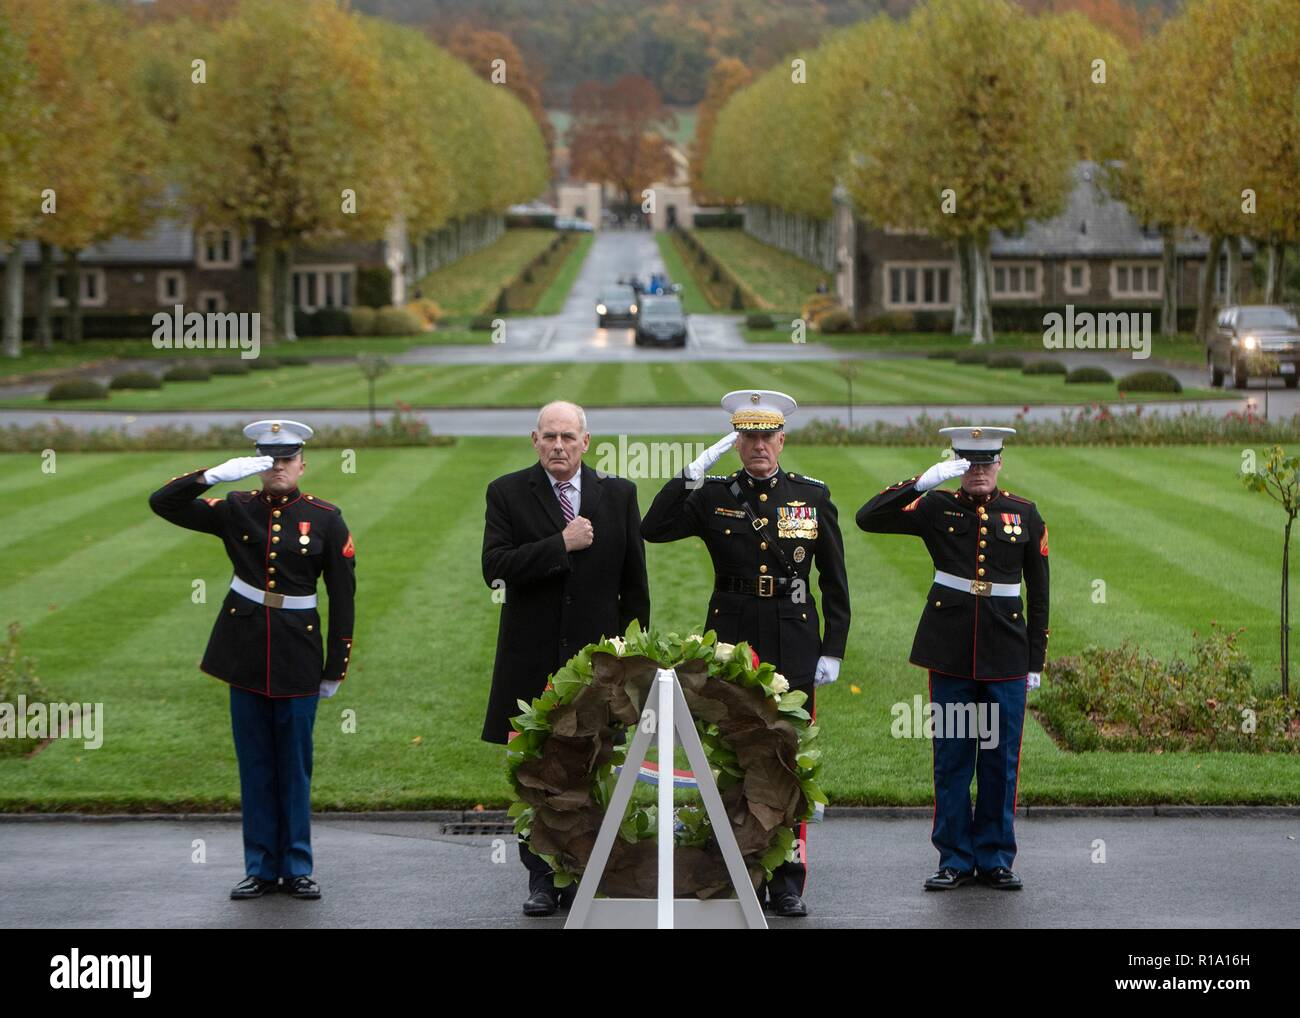 Belleau Wood, France. 10th Nov, 2018. U.S Joint Chiefs Chairman Gen. Joseph Dunford, right, walks with White House Chief of Staff John Kelly, left, salute during a ceremony at the Aisne - Marne American Cemetery near the World War One battle ground of Belleau Wood November 10, 2018 in Belleau, France. President Donald Trump was scheduled to attend the ceremony but cancelled due to inclement weather. Credit: Planetpix/Alamy Live News Stock Photo